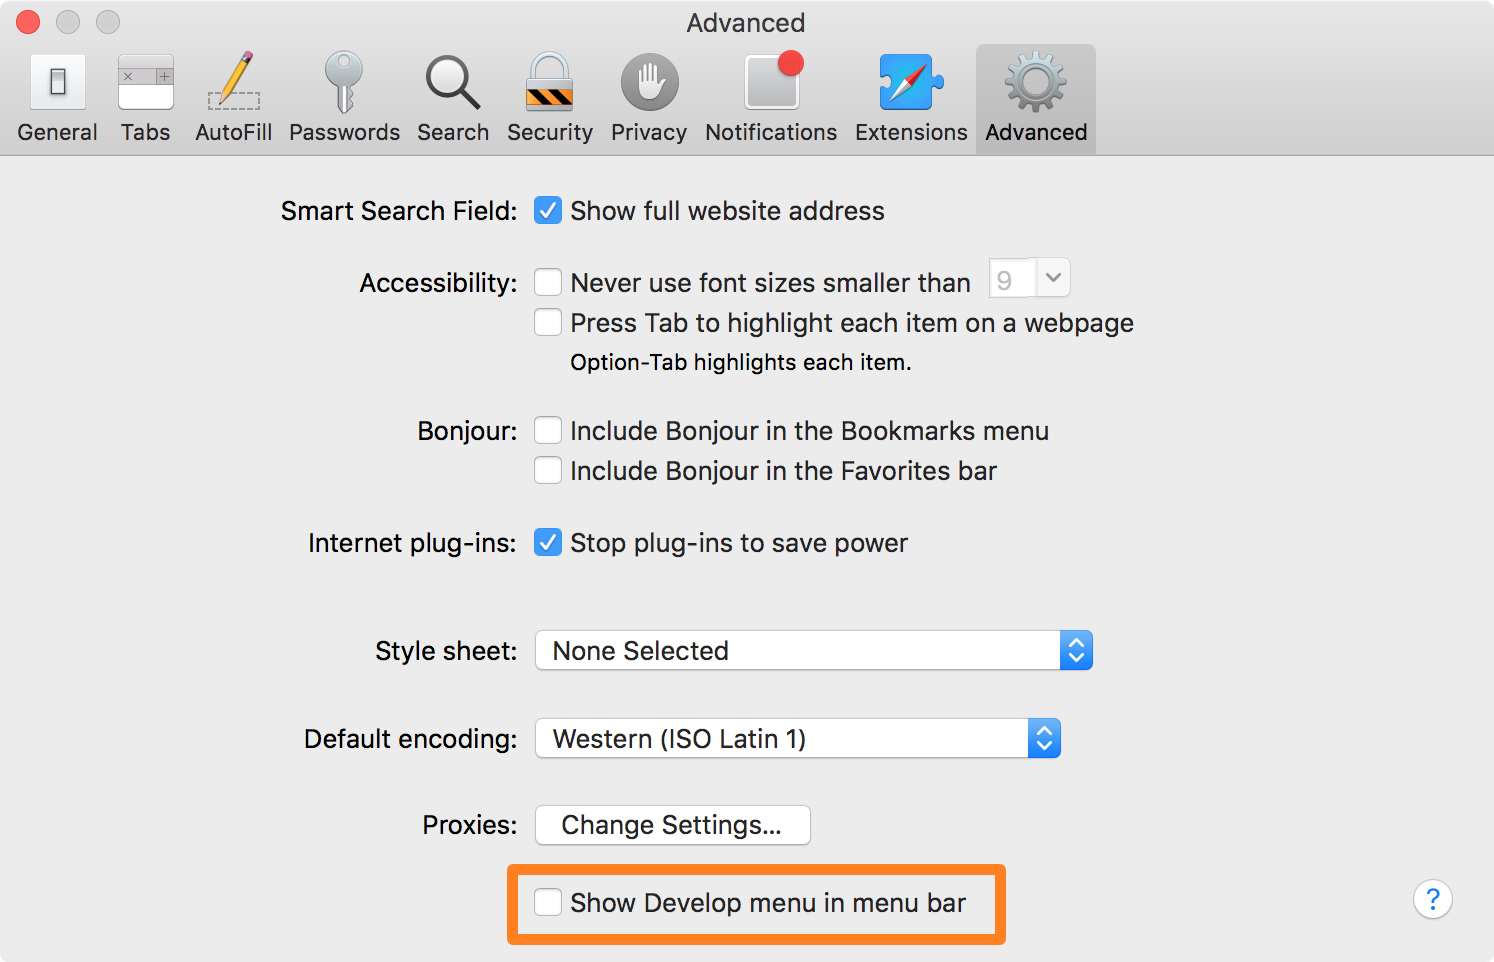 Safari preferences - show Develop in menu bar